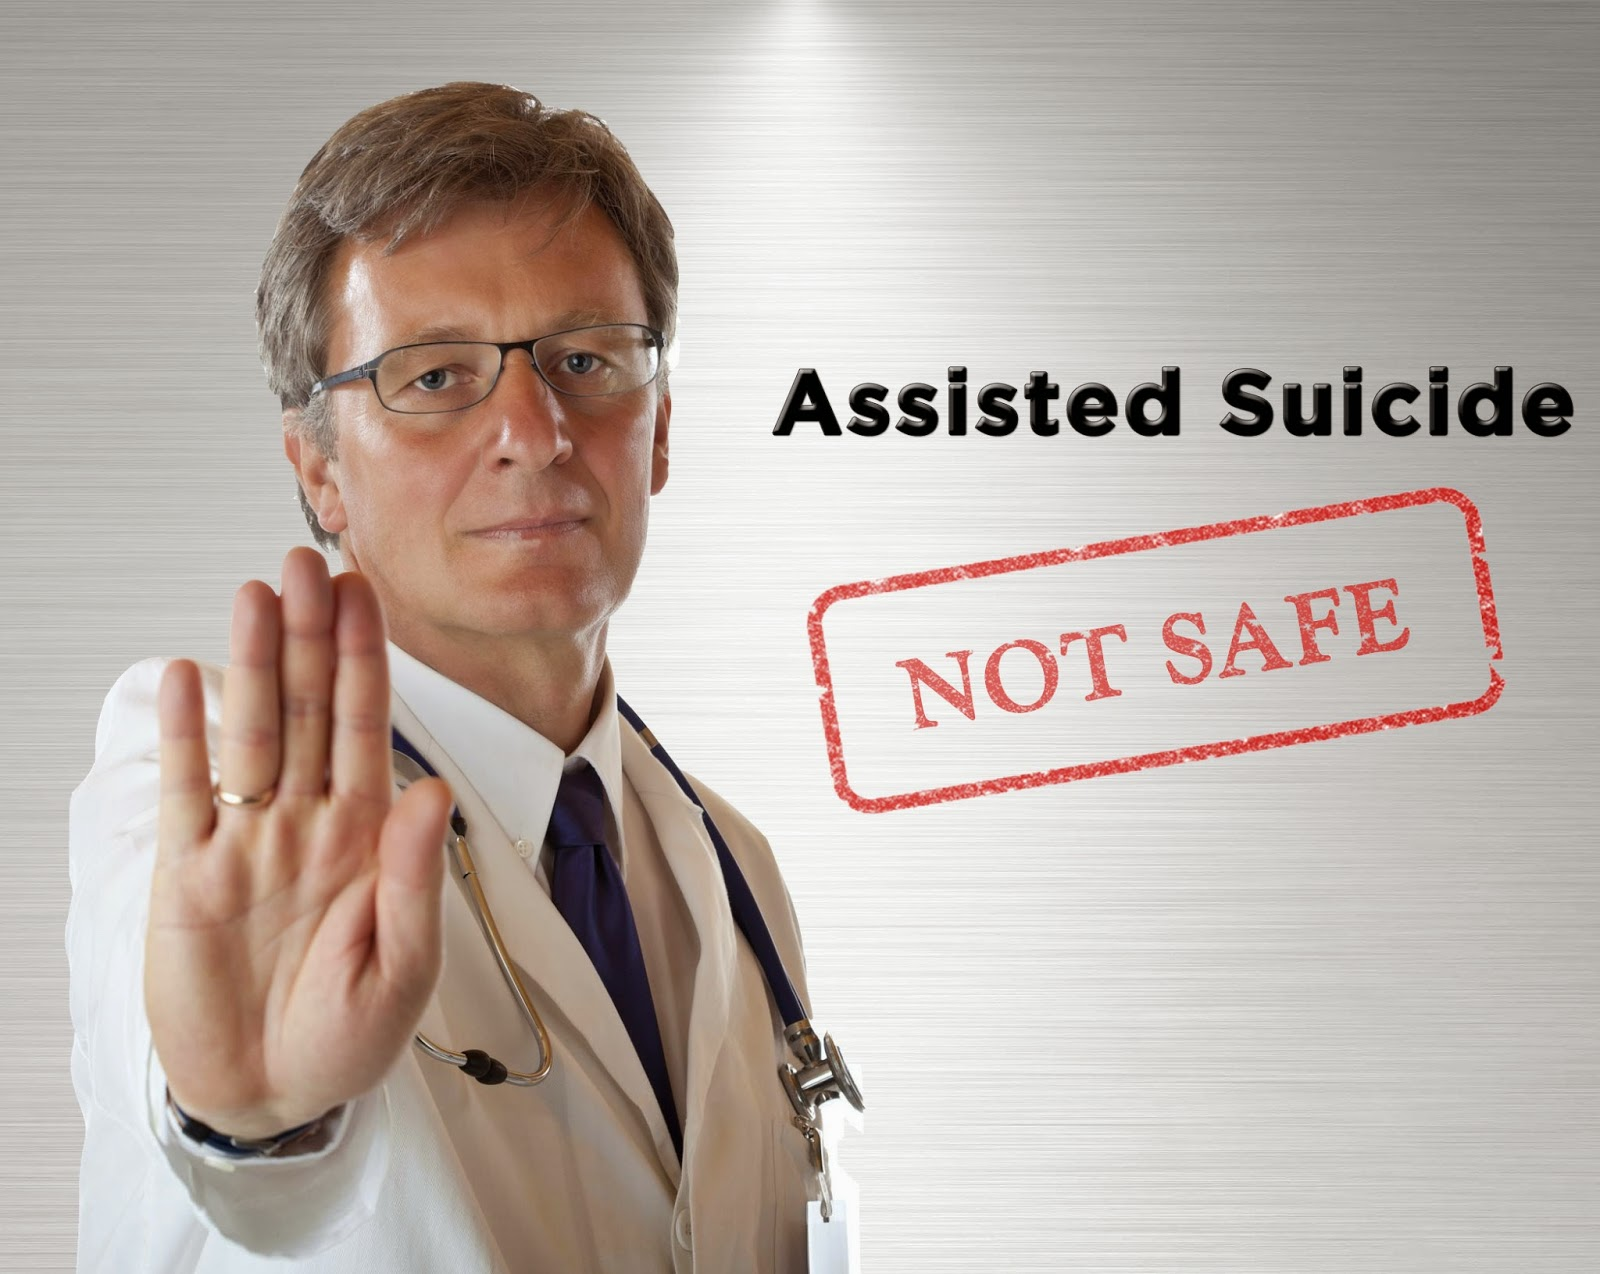 anti euthanasia speech Euthanasia is against the law in the uk where it is illegal to help anyone kill themselves voluntary euthanasia or assisted suicide can lead to imprisonment of.